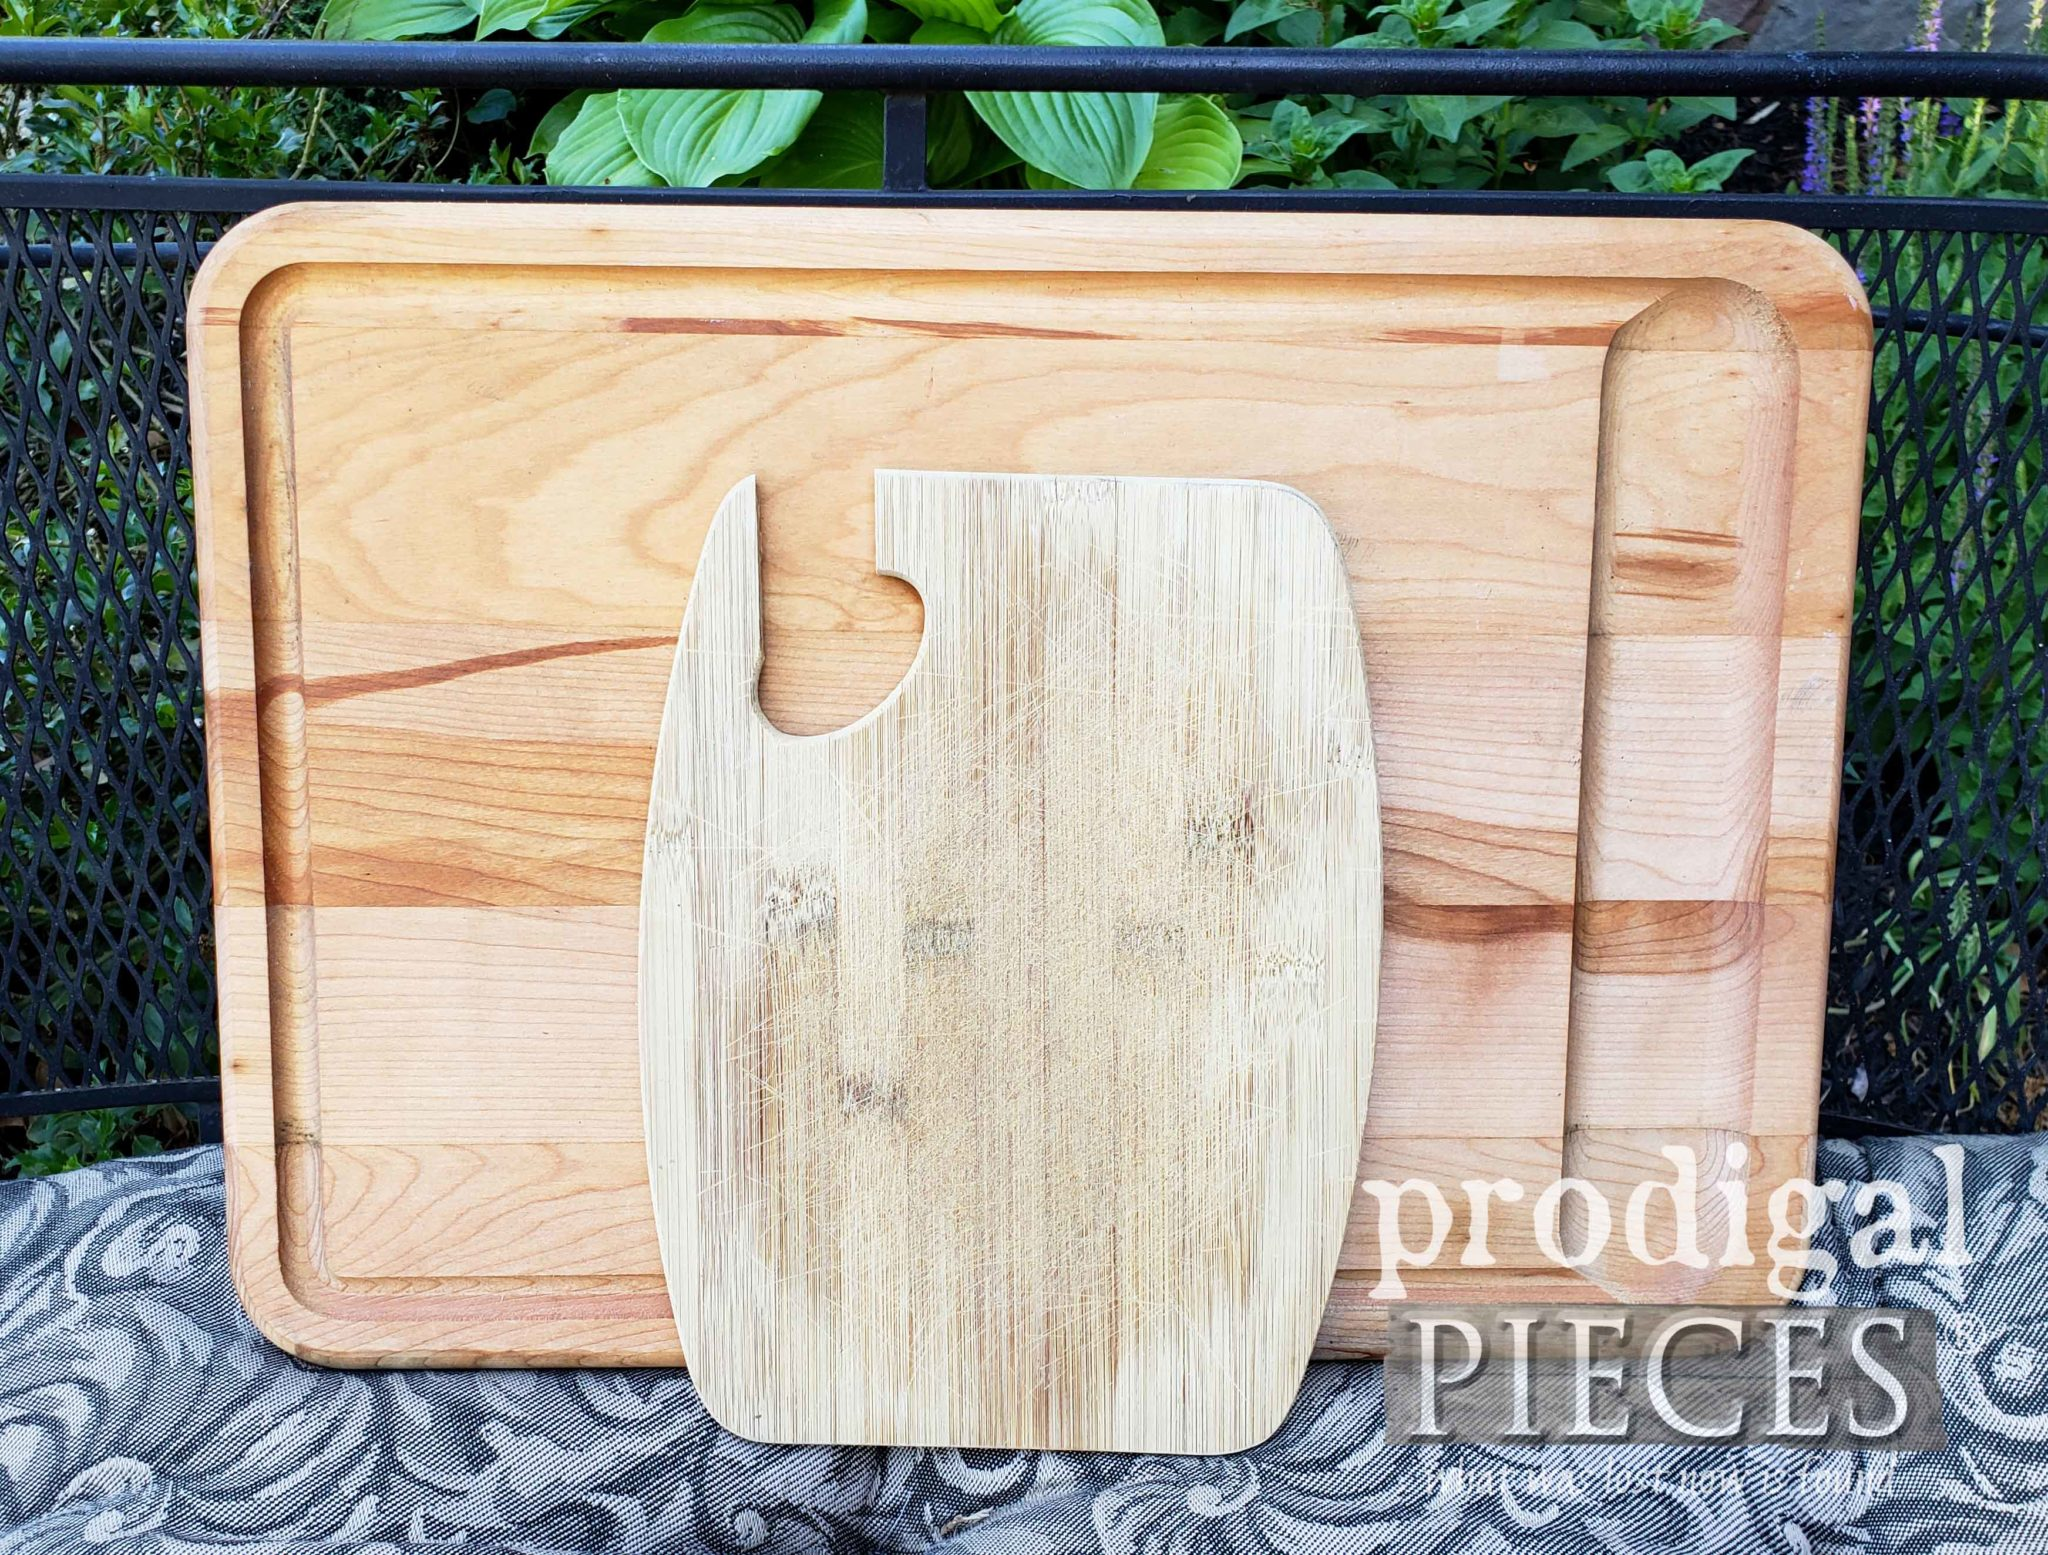 Worn Out Cutting Board about to get new life | prodigalpieces.com